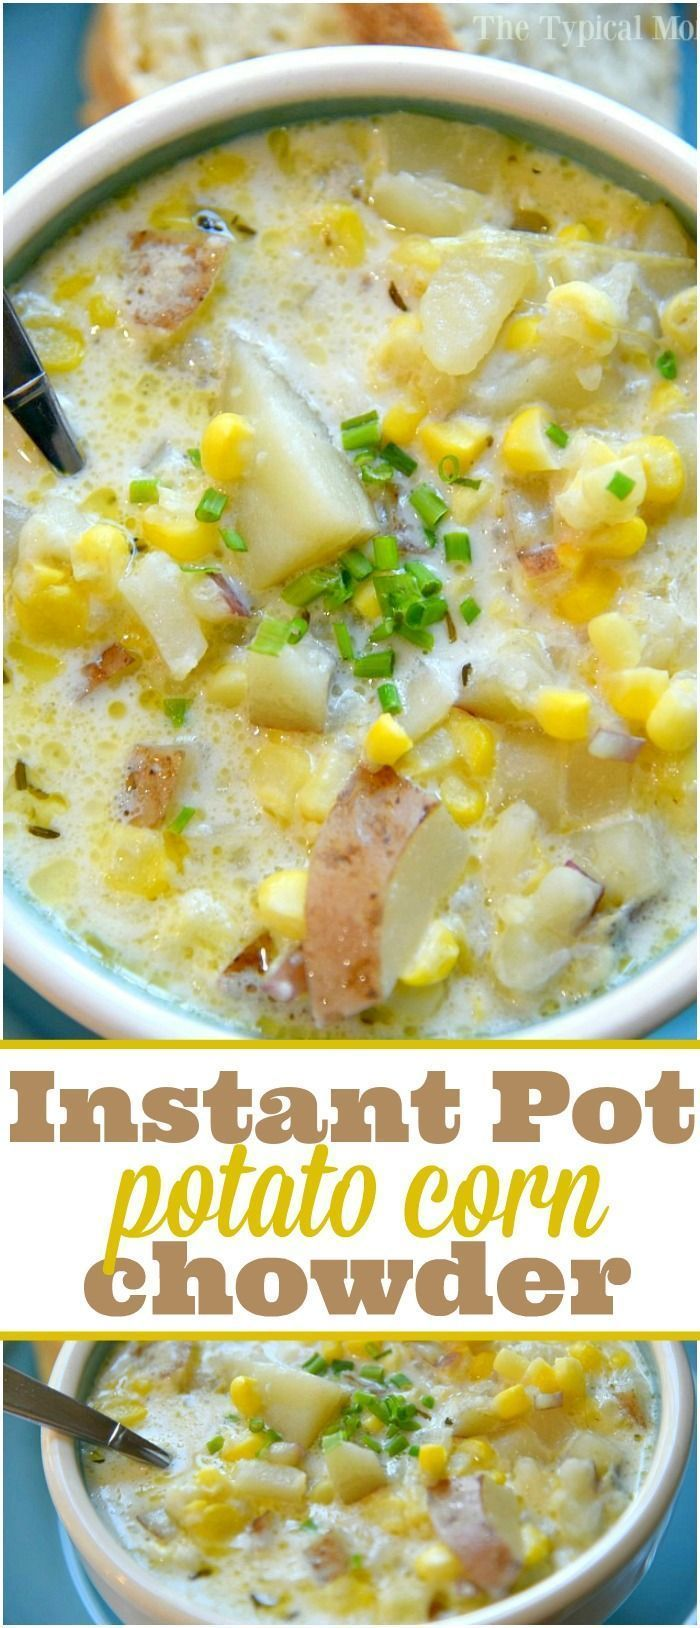 This Instant Pot potato corn chowder is amazing!! It only takes 15 minutes including prep time and is the perfect soup all year long.